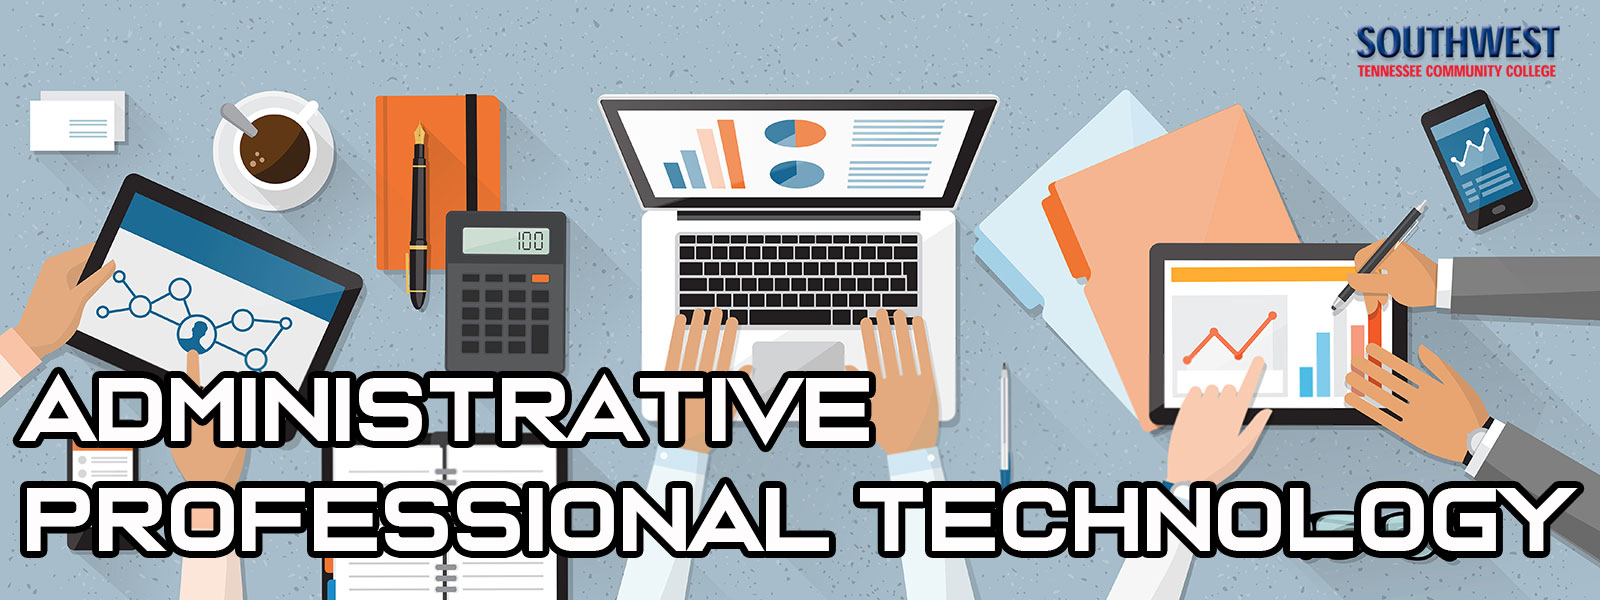 Administrative Professional Technology